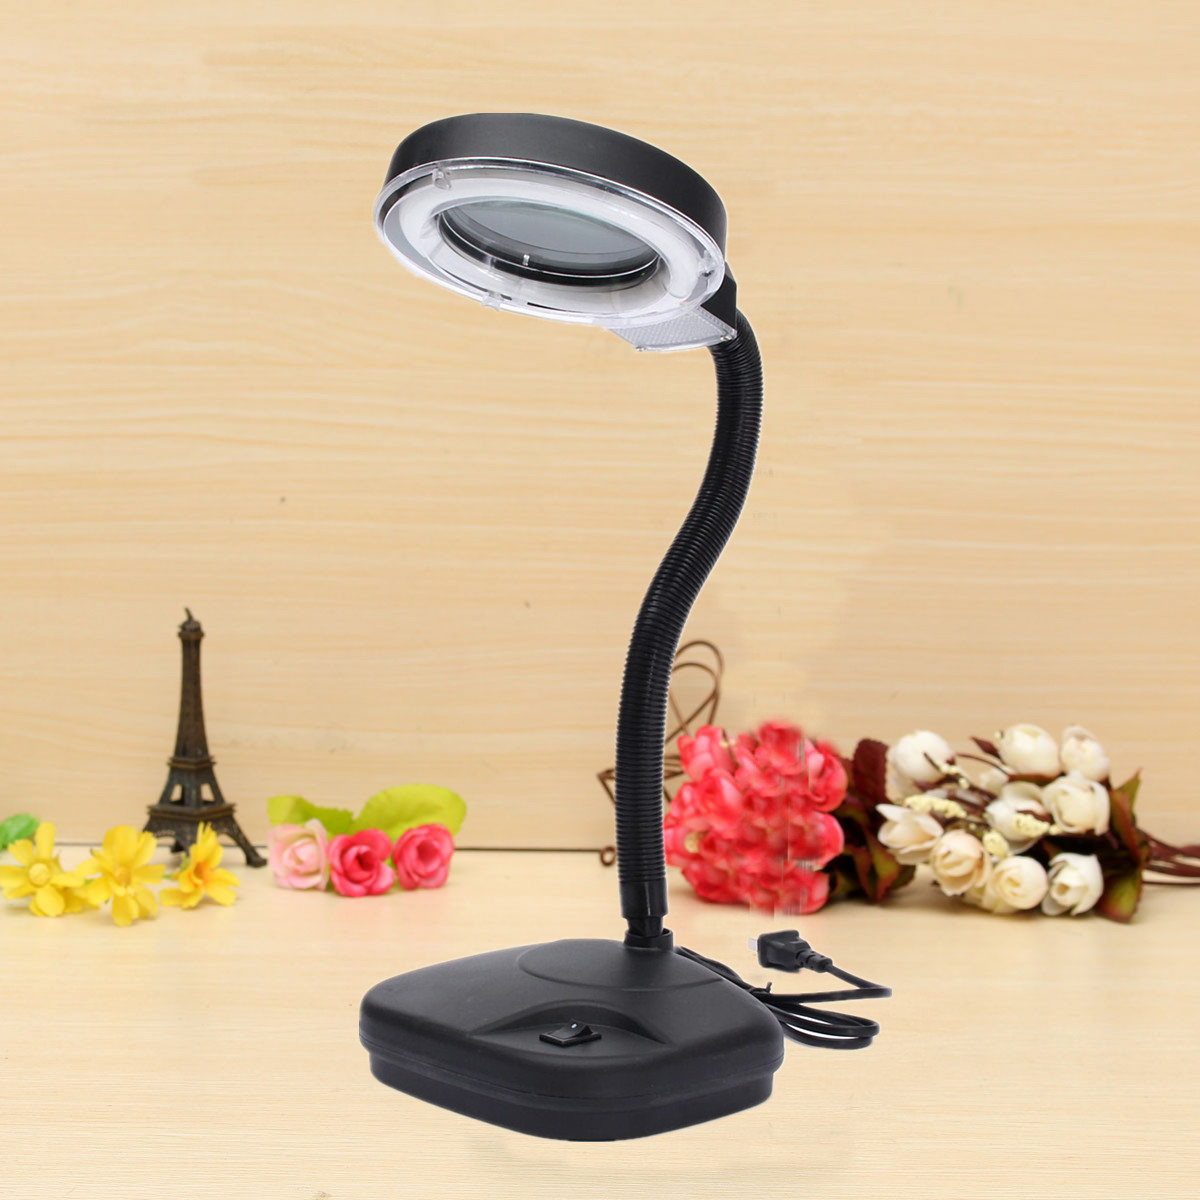 Desk Light LED Magnifying Lens Glass Book Night Light Magnifier Desk Table Lamp for Students Officers Watch Worker high quality magnifying glass led light lamp desk magnifying led table light magnifier jdh99